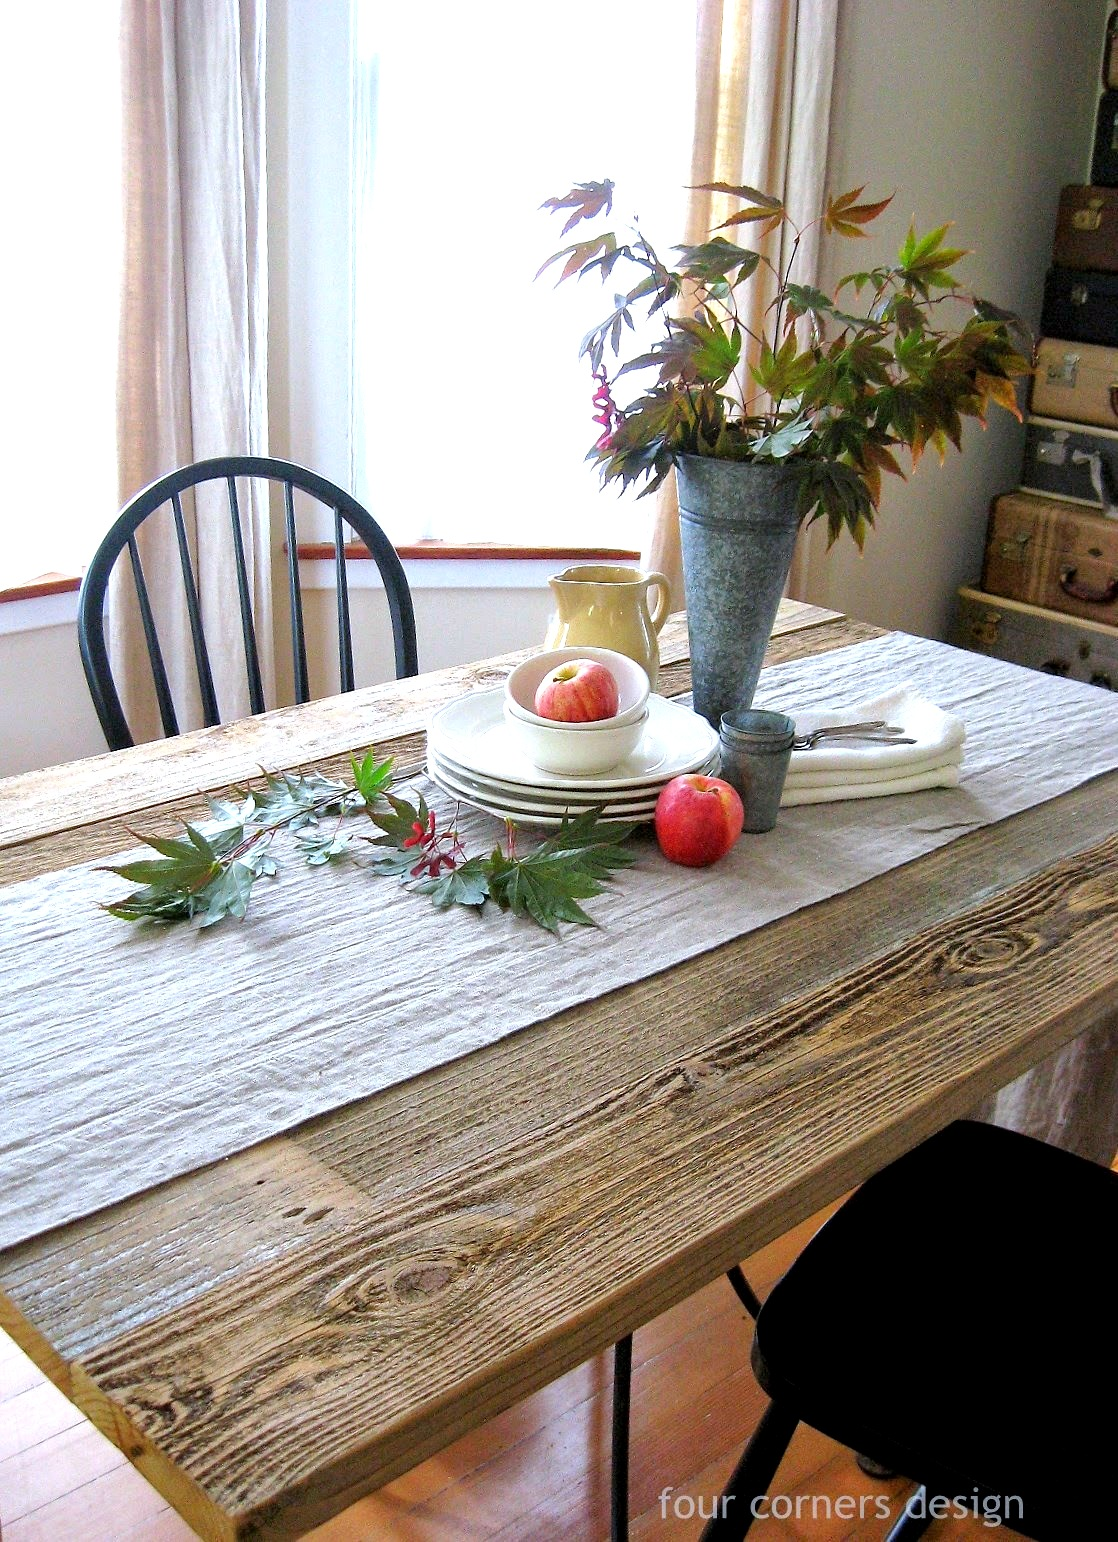 DIY reclaimed wood dining table by Four Corners Design featured on FunkyJunkInteriors.net